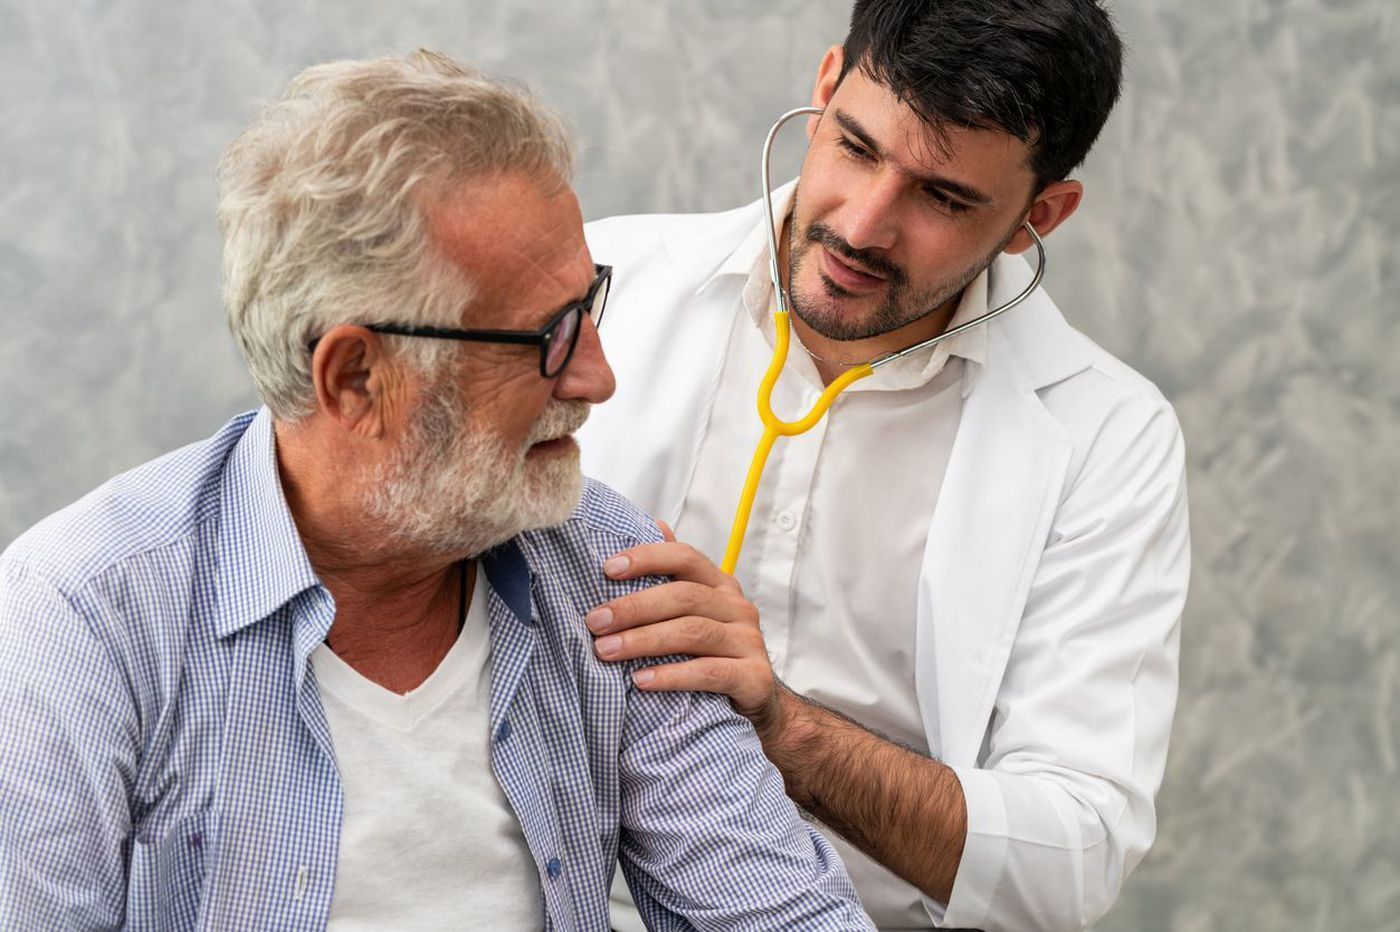 Older patients resist talking with doctors about their life expectancy, study finds